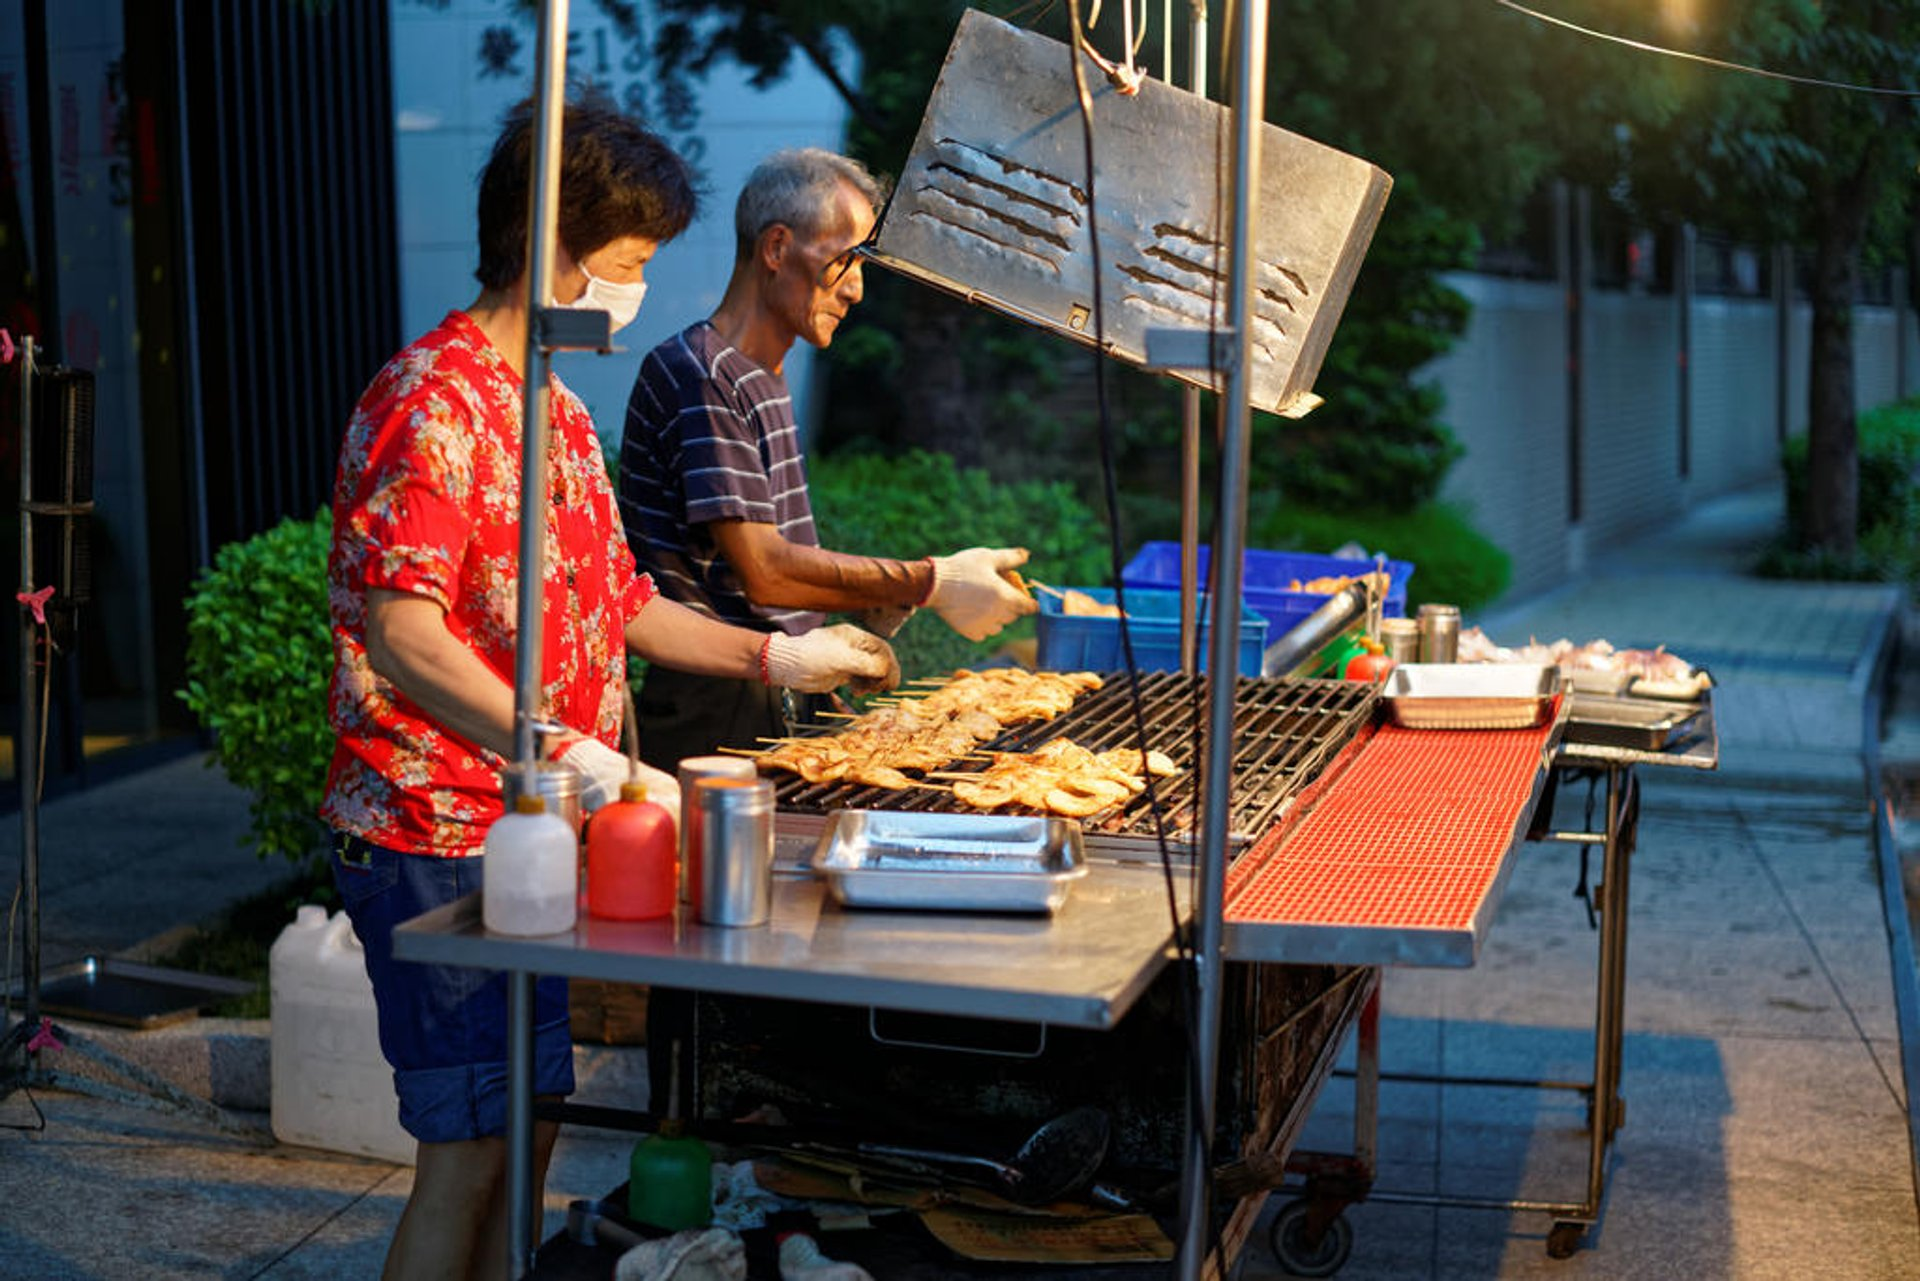 The barbeque on the street in Taoyuan, Taiwan 2020